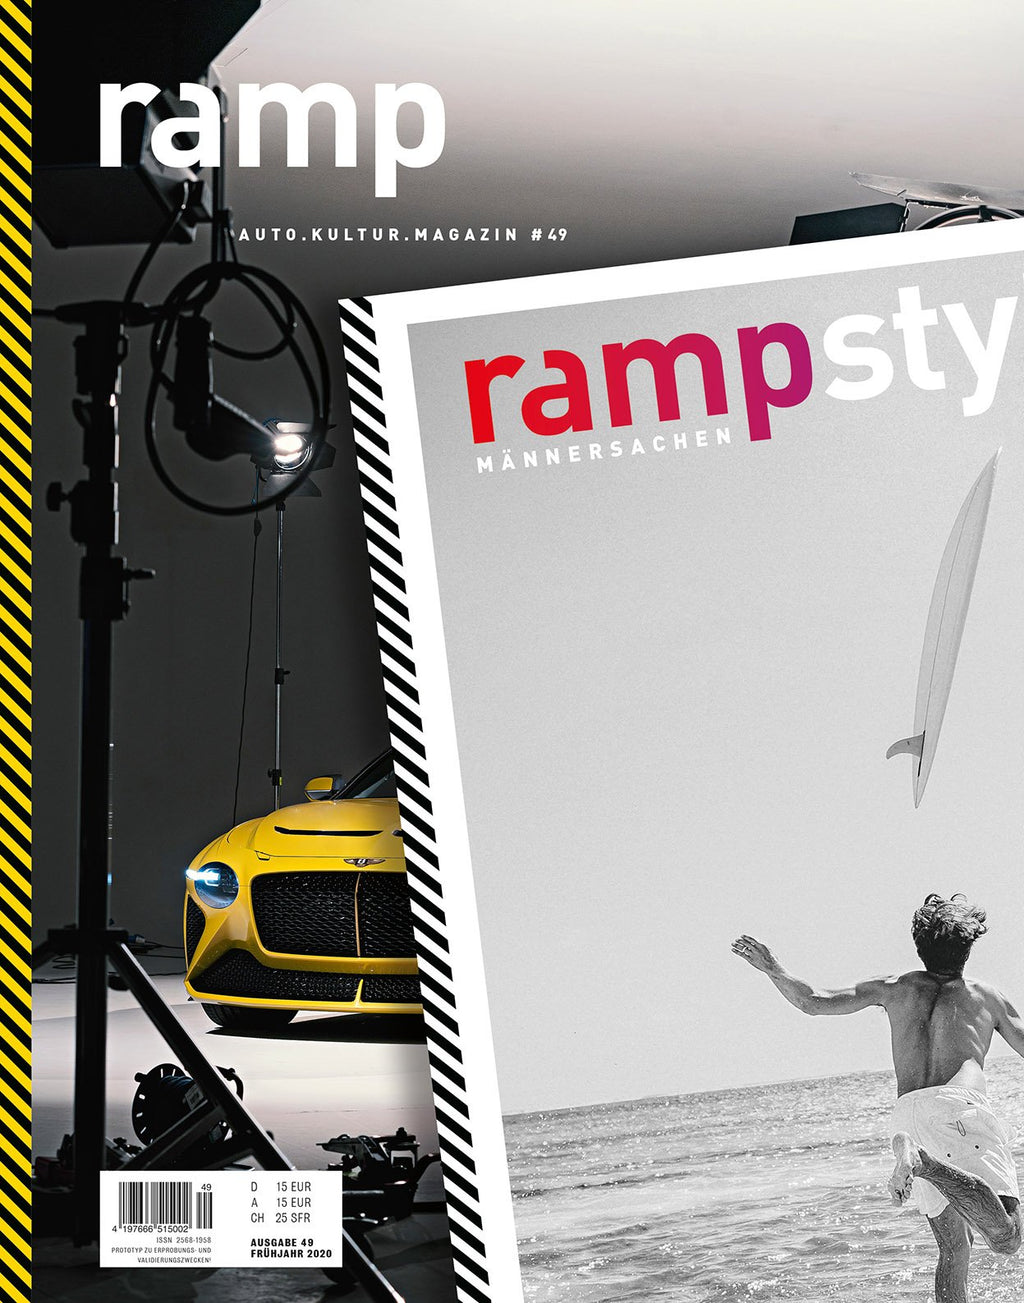 ramp & rampstyle Kombi Abo - ramp.space